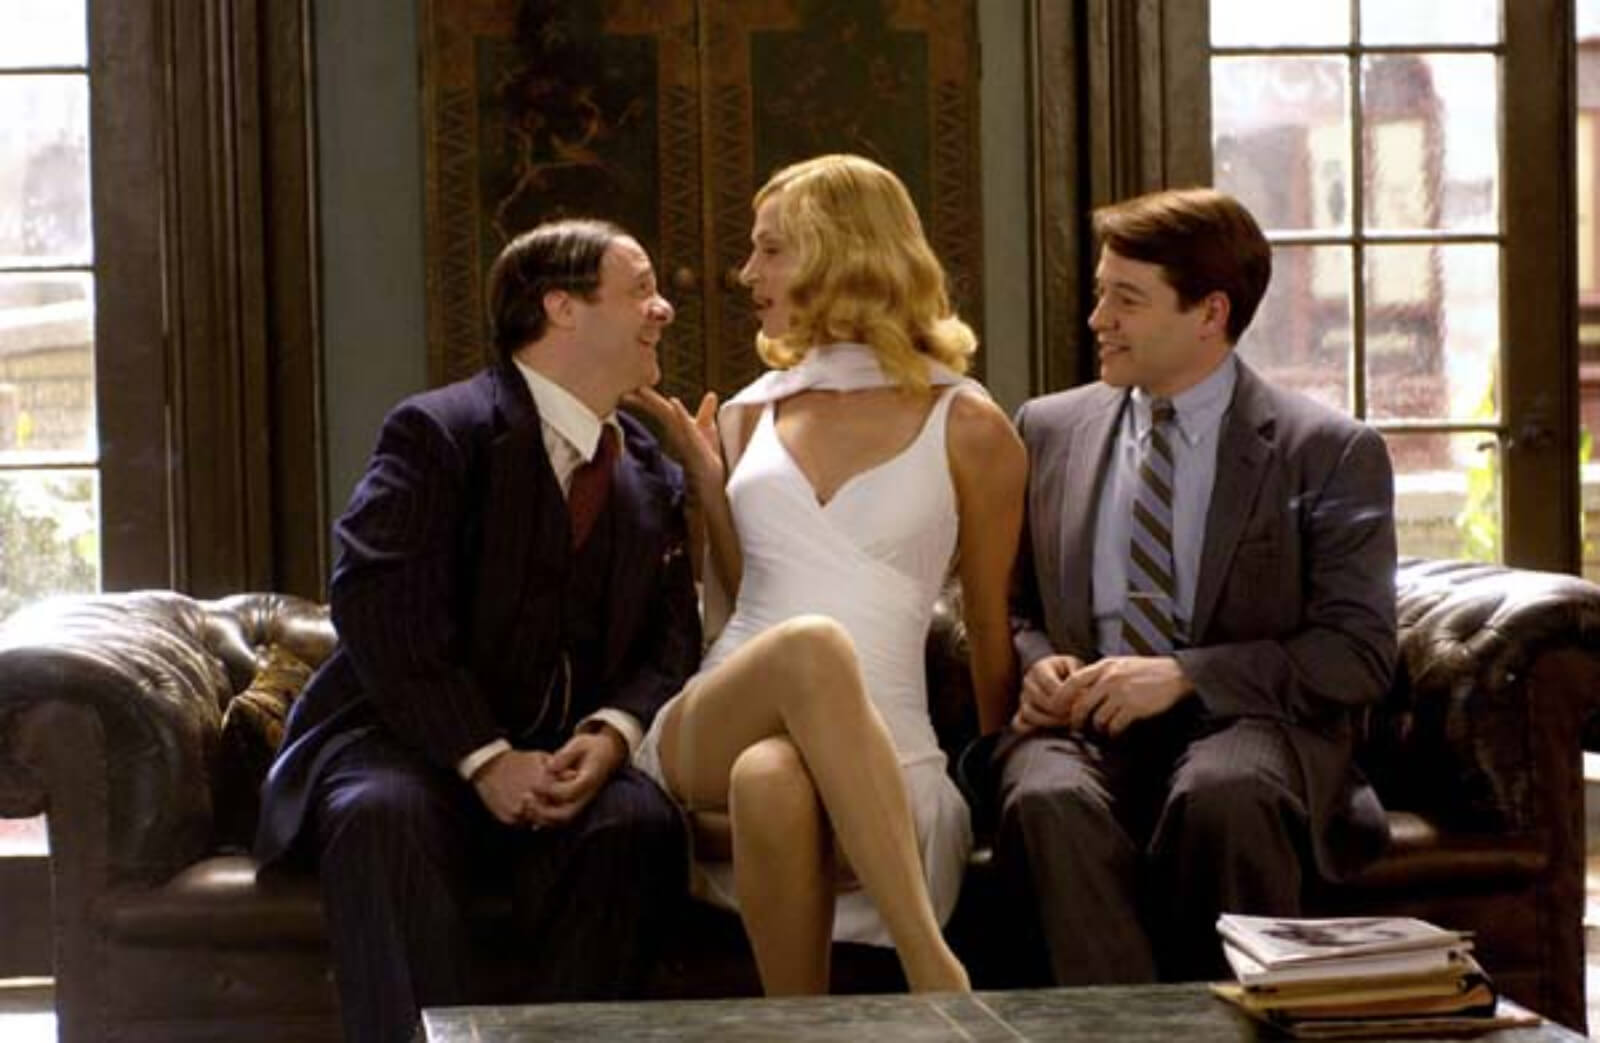 """Max Bialystock (Nathan Lane),Ulla (Uma Thurman) and Leo Bloom (Matthew Broderick) in """"When You Got It, Flaunt It"""". They are sitting on the sofa in Max's office. Ulla wears a tight white dress. They sit very close together. Max and Leo are smiling."""